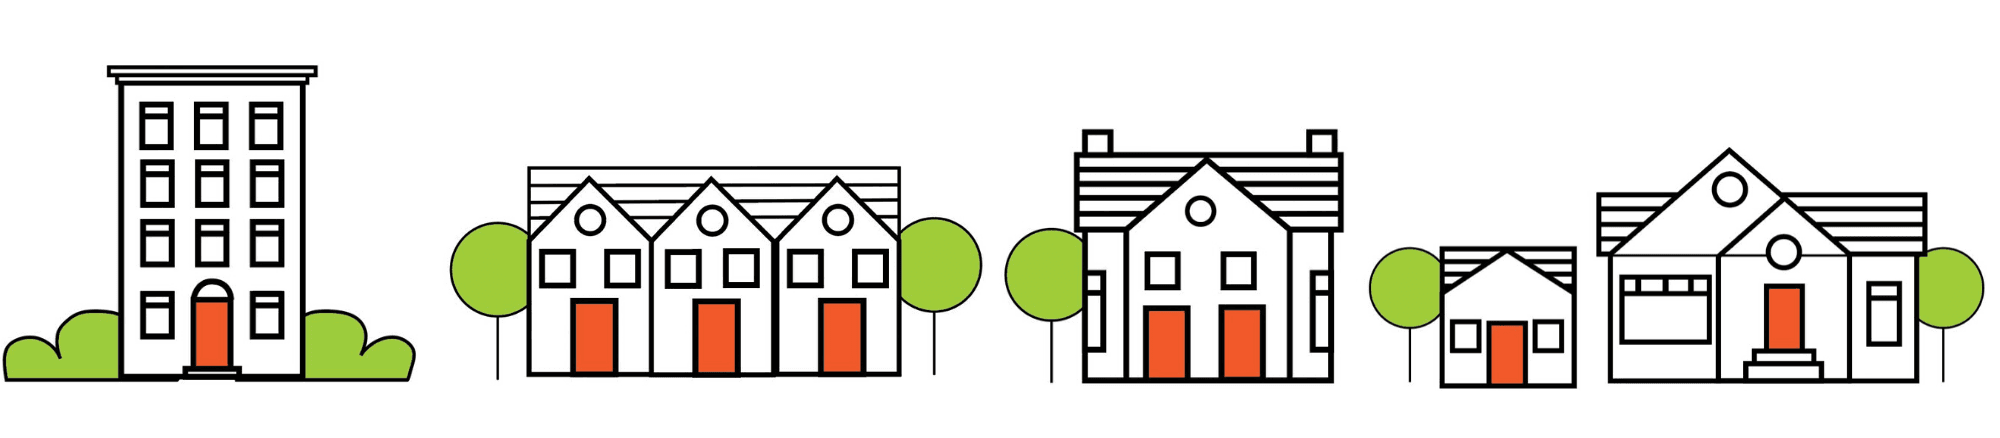 Middle Housing graphic